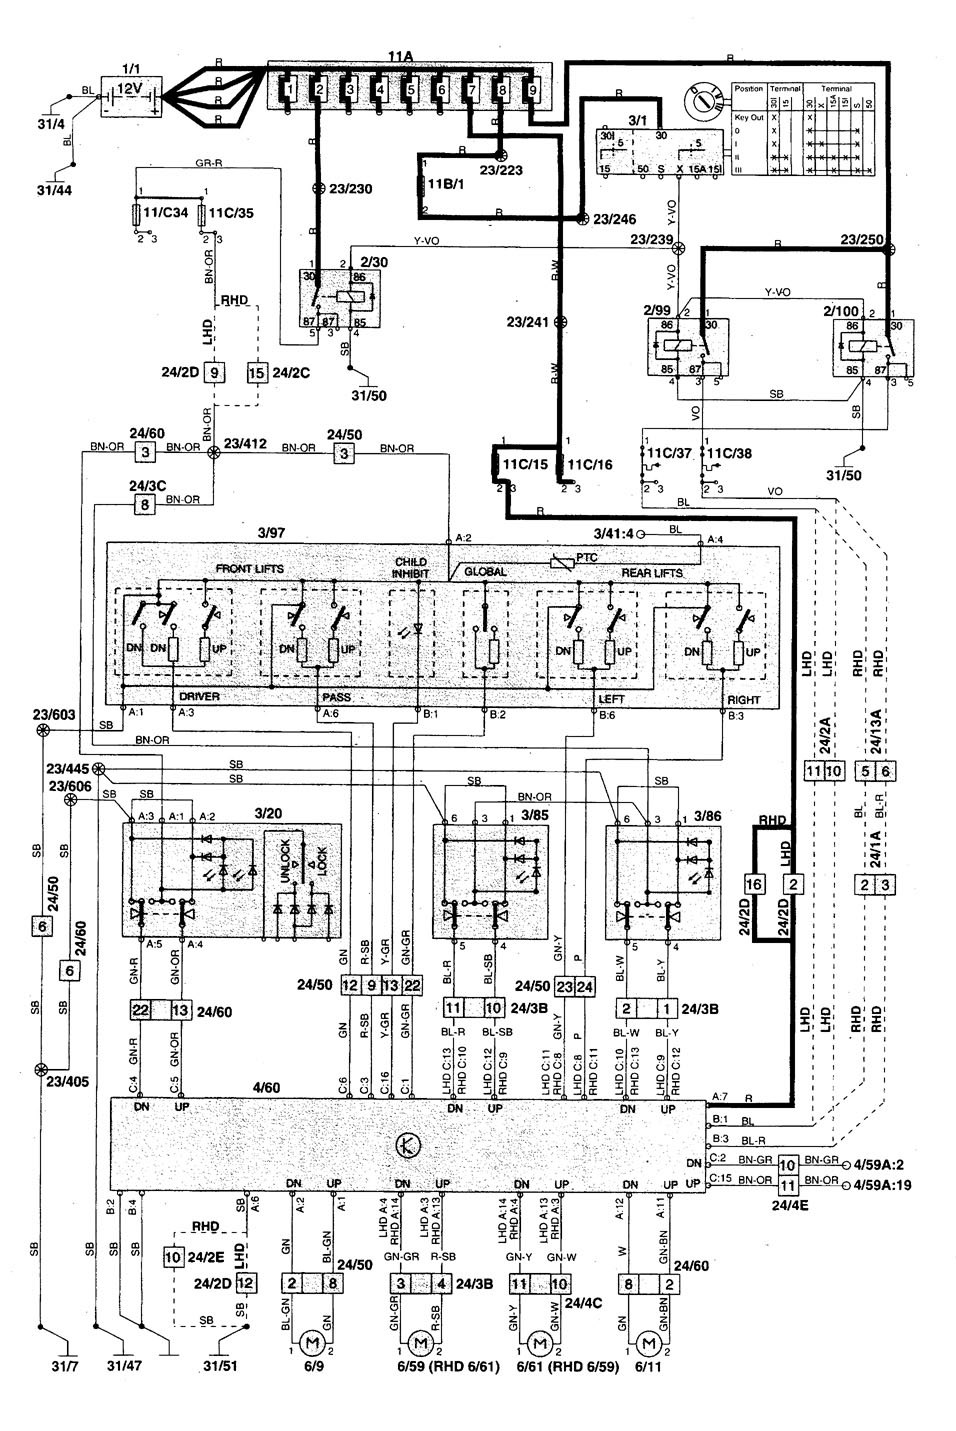 medium resolution of volvo c70 wiring diagram detailed wiring diagram rh 7 6 ocotillo paysage com audi tt wiring diagram audi tt wiring diagram